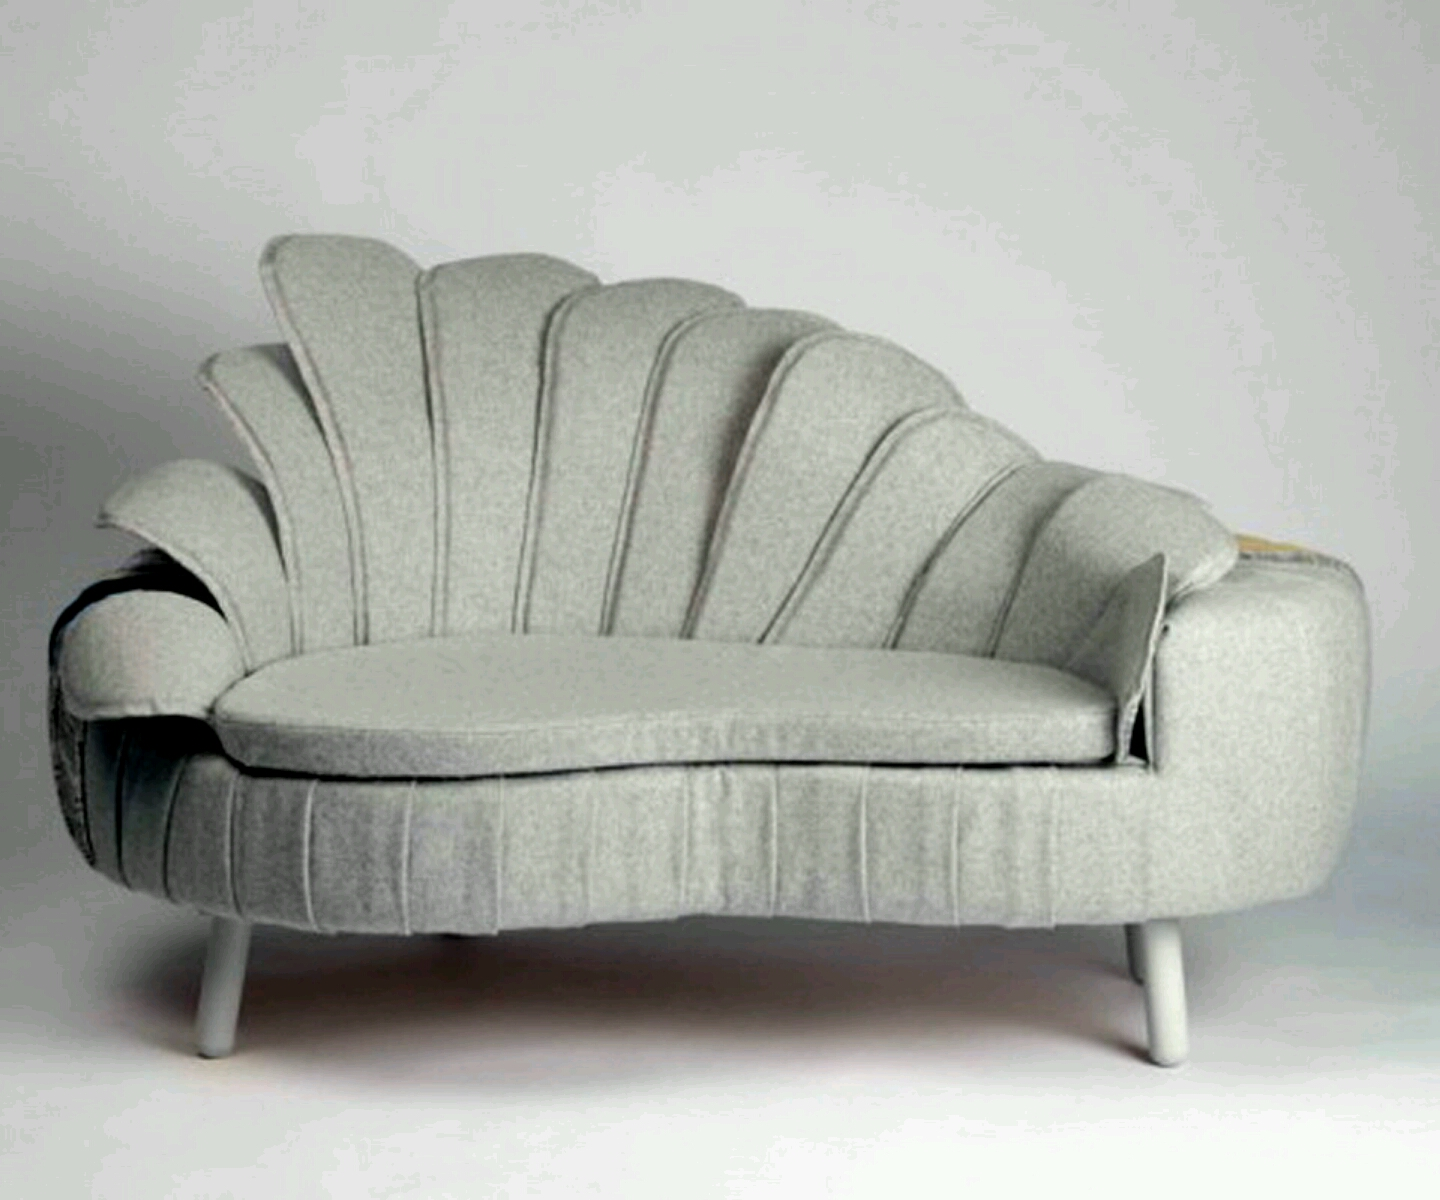 Modern Sofa Chair Designs: Modern Beautiful White Sofa Designs.